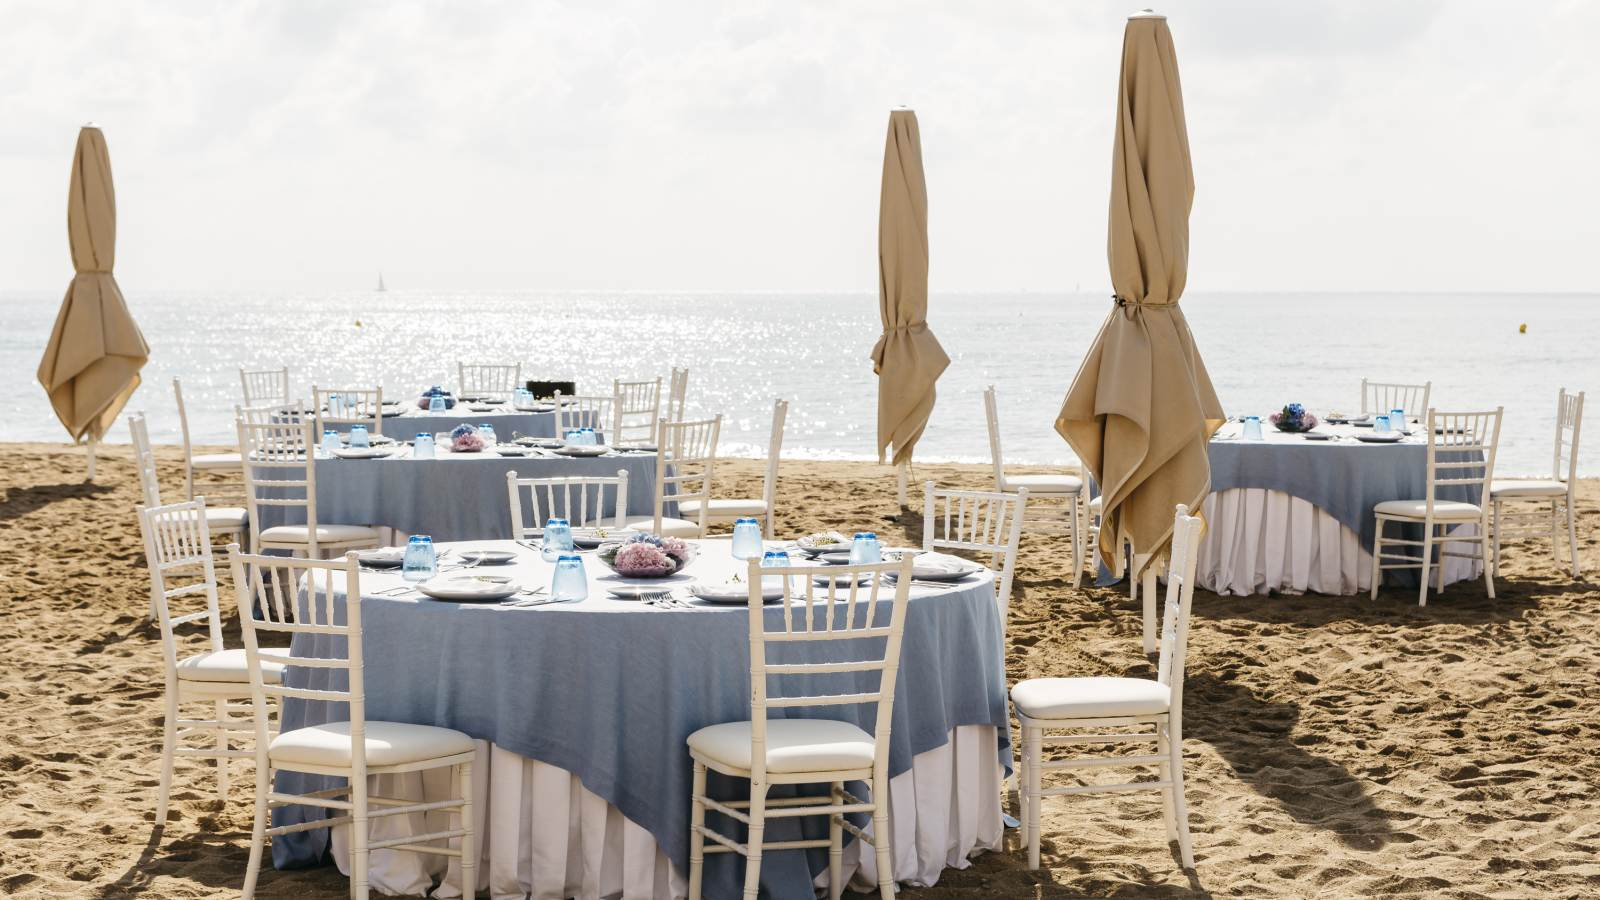 Beach wedding celebrations at Le Méridien Ra El Vendrell